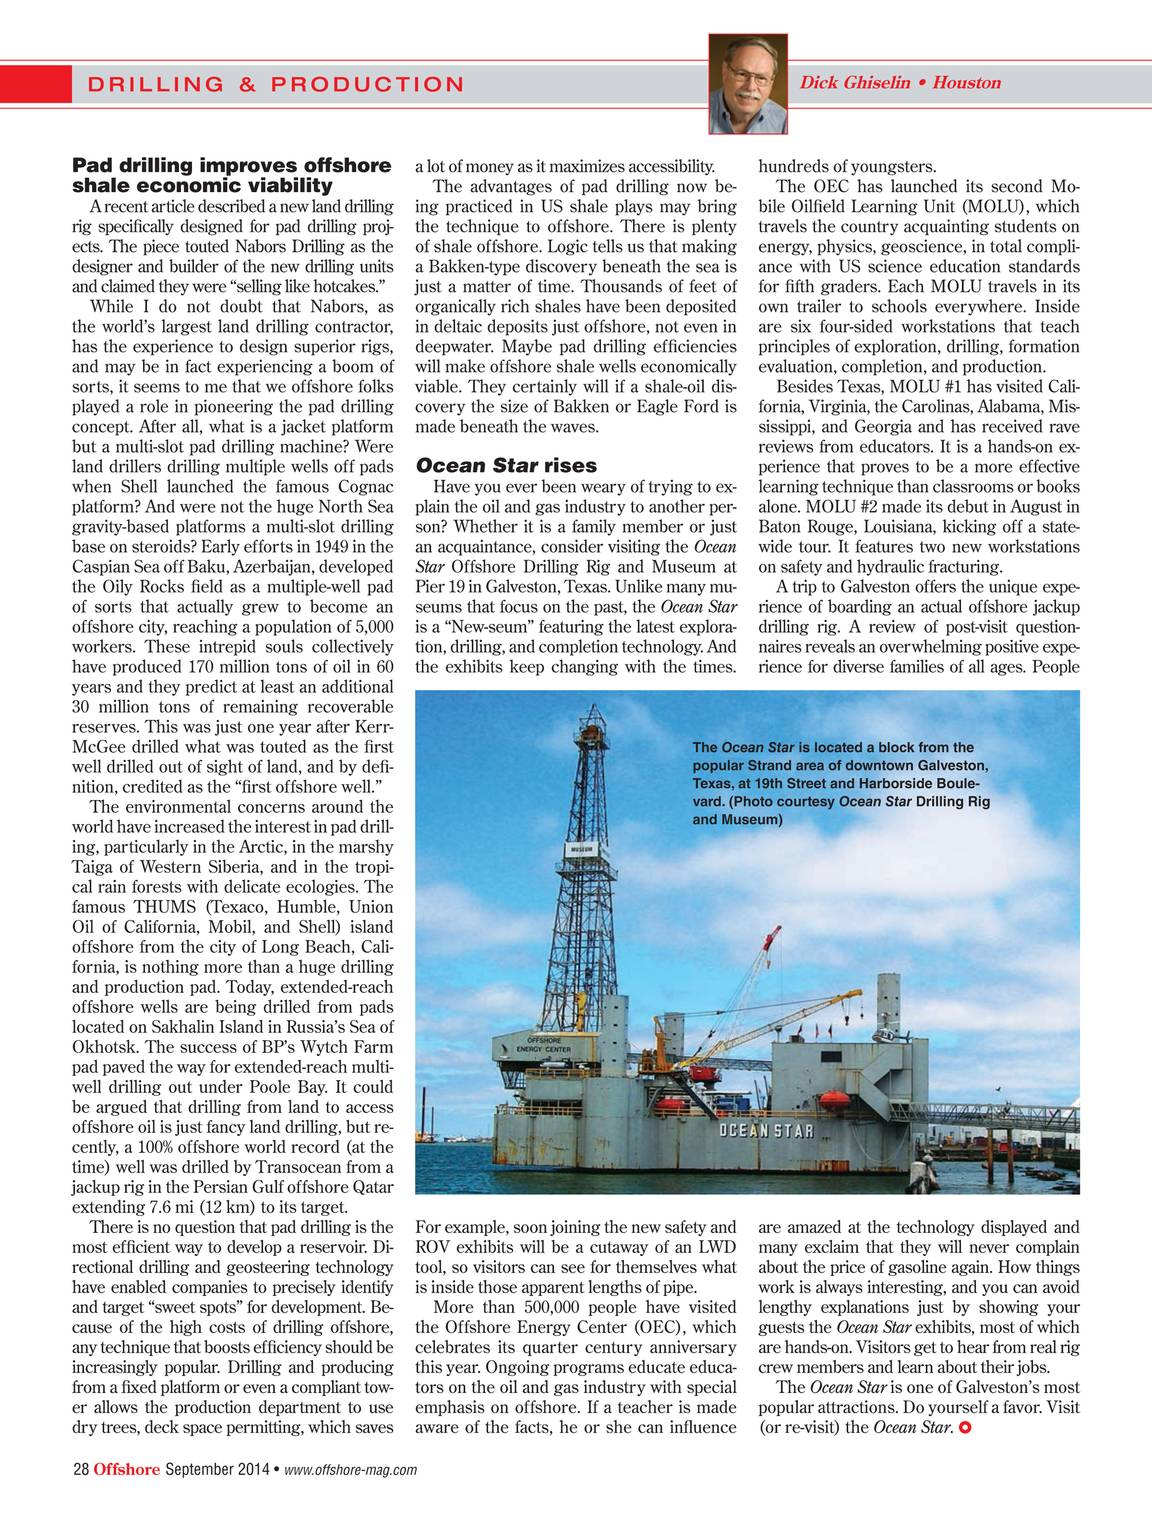 Offshore Magazine - September 2014 - page 27